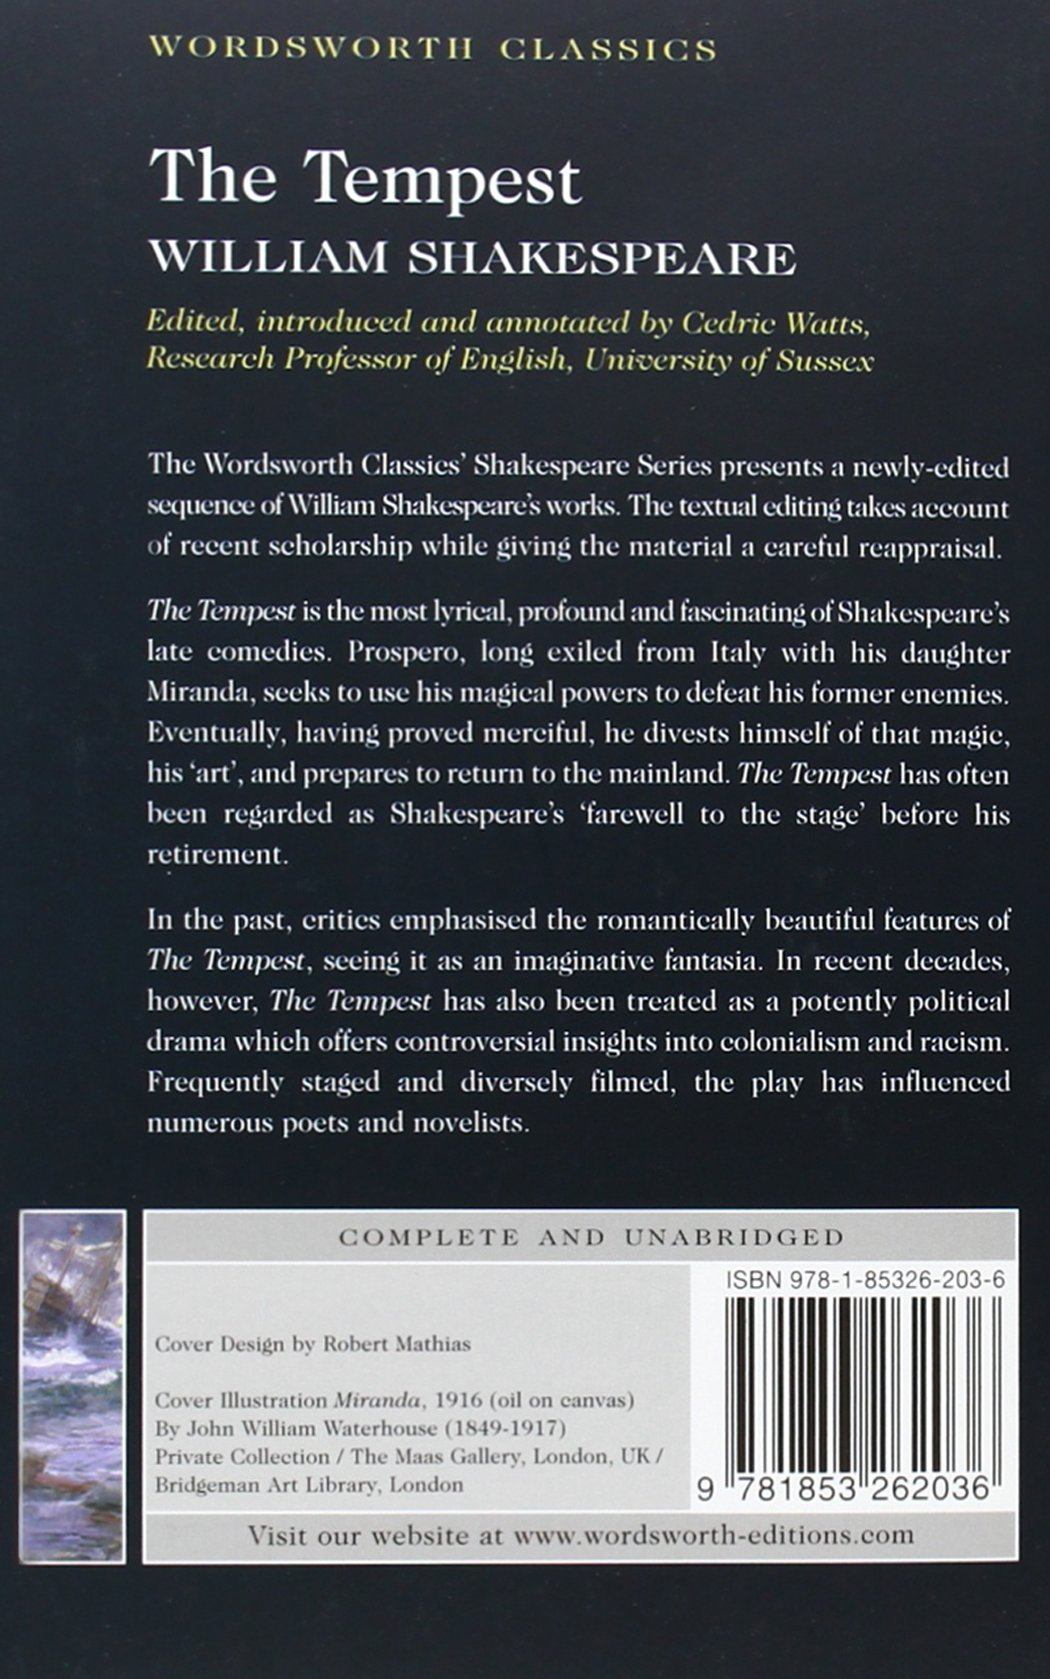 the tempest wordsworth classics amazon co uk william the tempest wordsworth classics amazon co uk william shakespeare cedric watts dr keith carabine 9781853262036 books